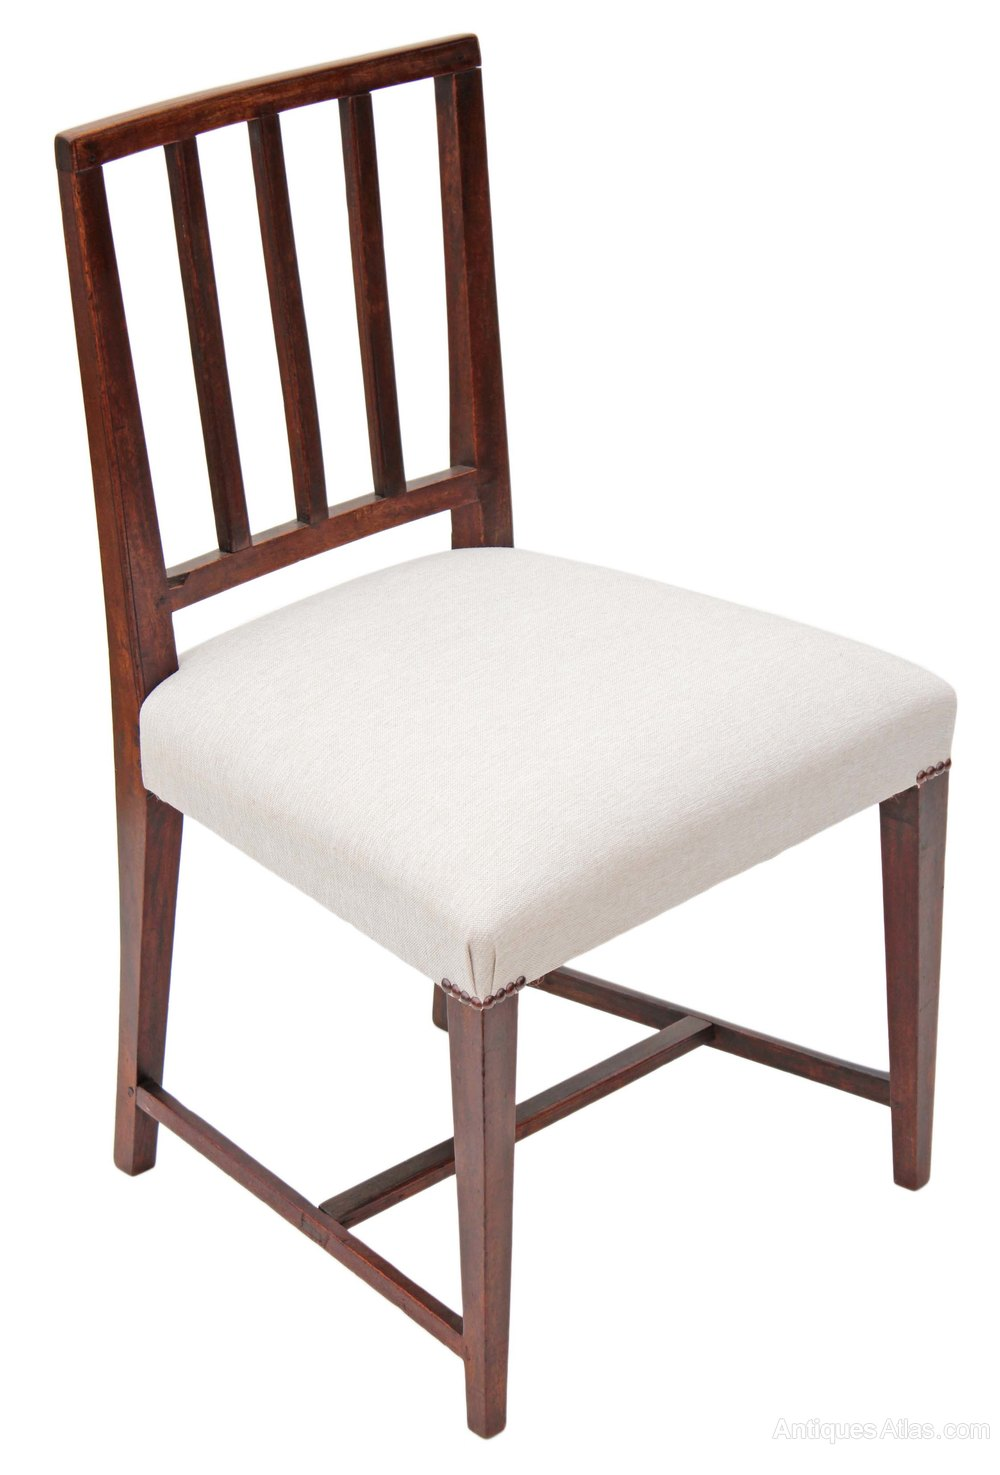 Set Of 6 Georgian Dining Chairs Mahogany Antiques Atlas : Setof6Georgiandiningchairas462a1128z 4 from antiques-atlas.com size 1000 x 1475 jpeg 112kB